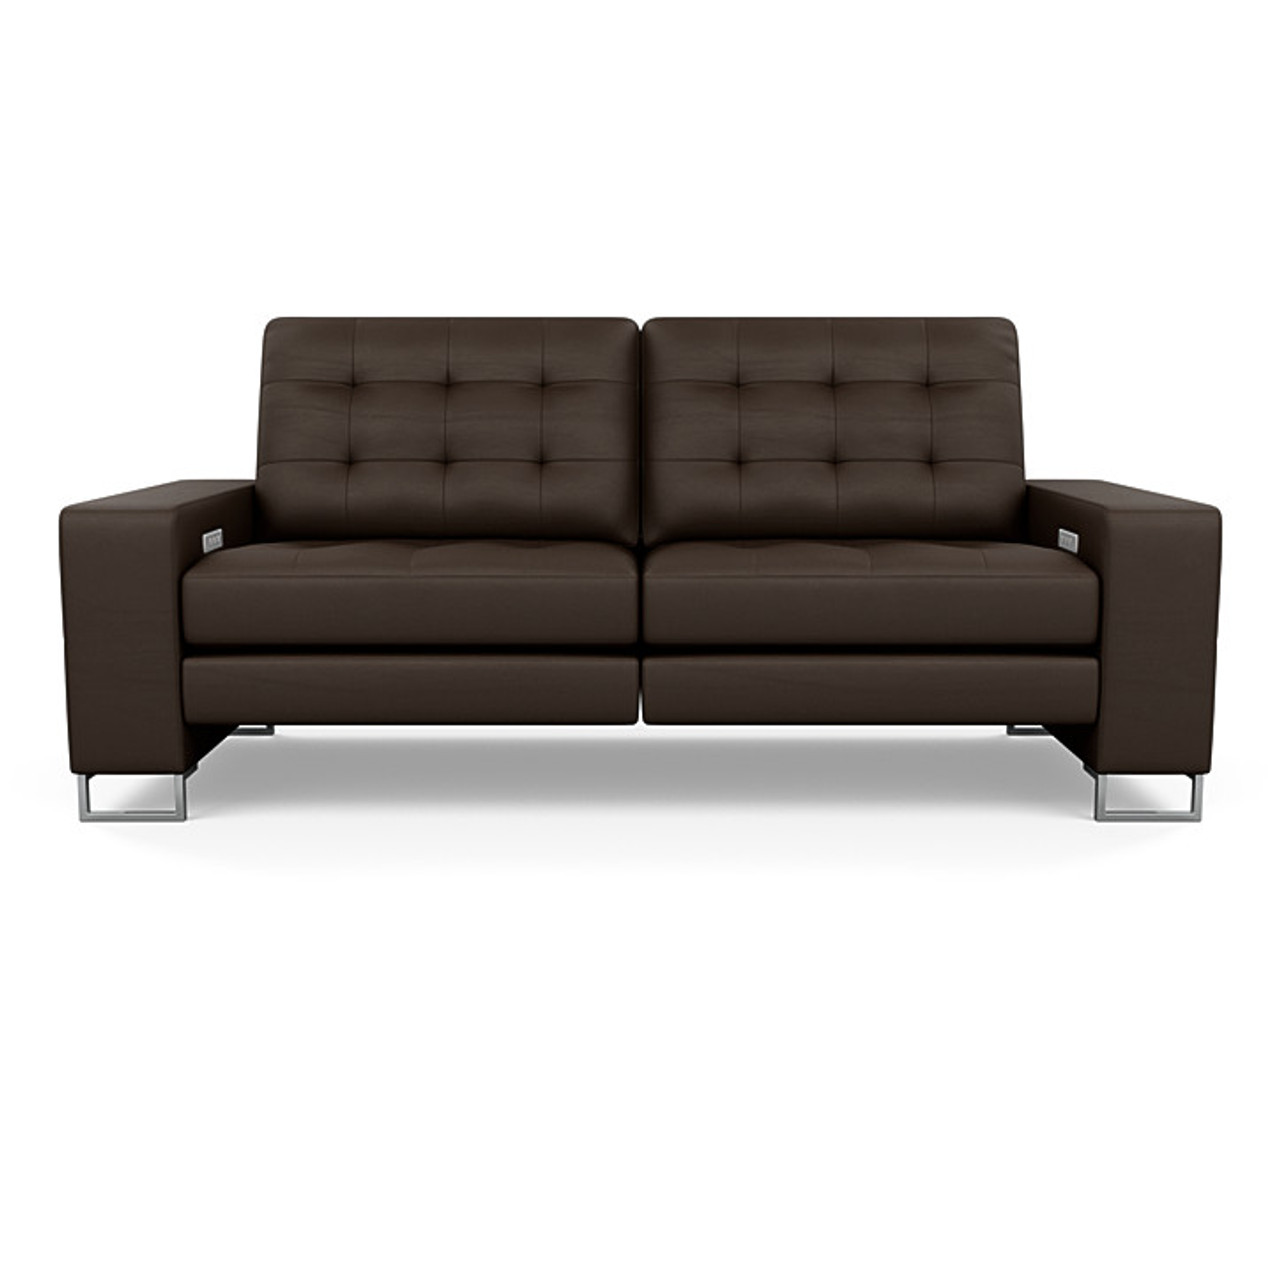 HUDSON MOTION SOFA COLLECTION